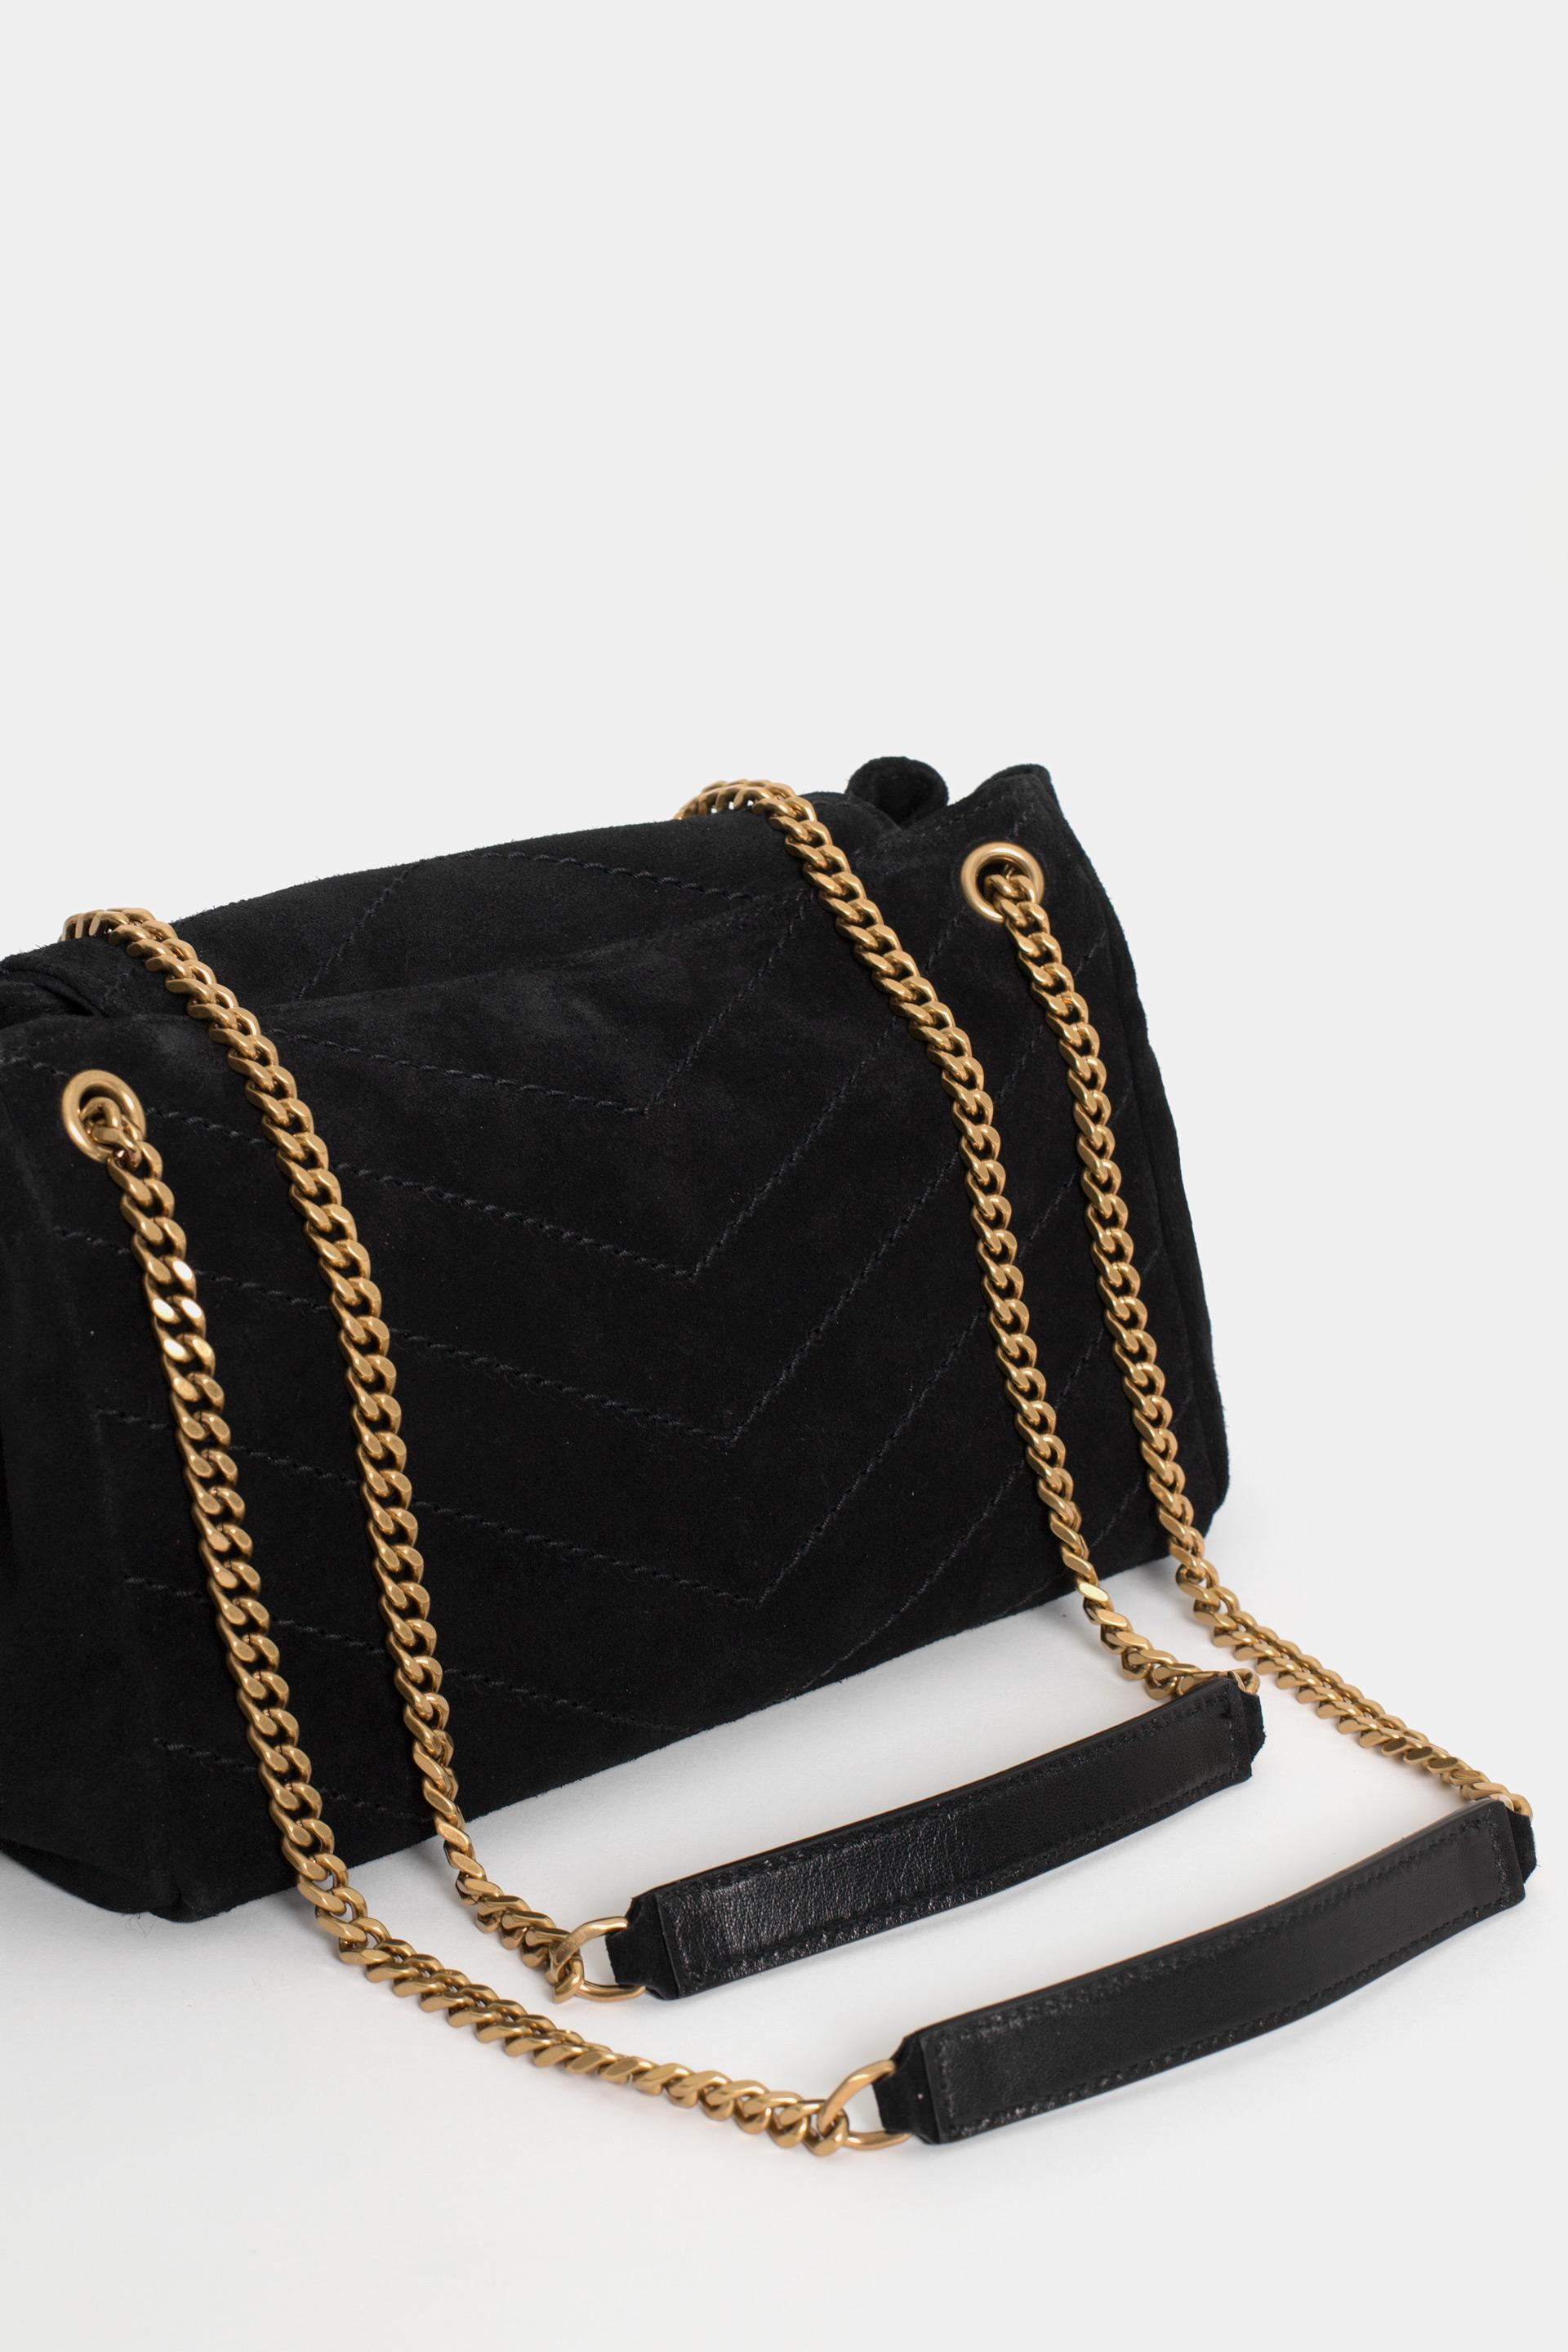 faf9993cd706 Lyst - Saint Laurent Small Nolita Suede Bag in Black